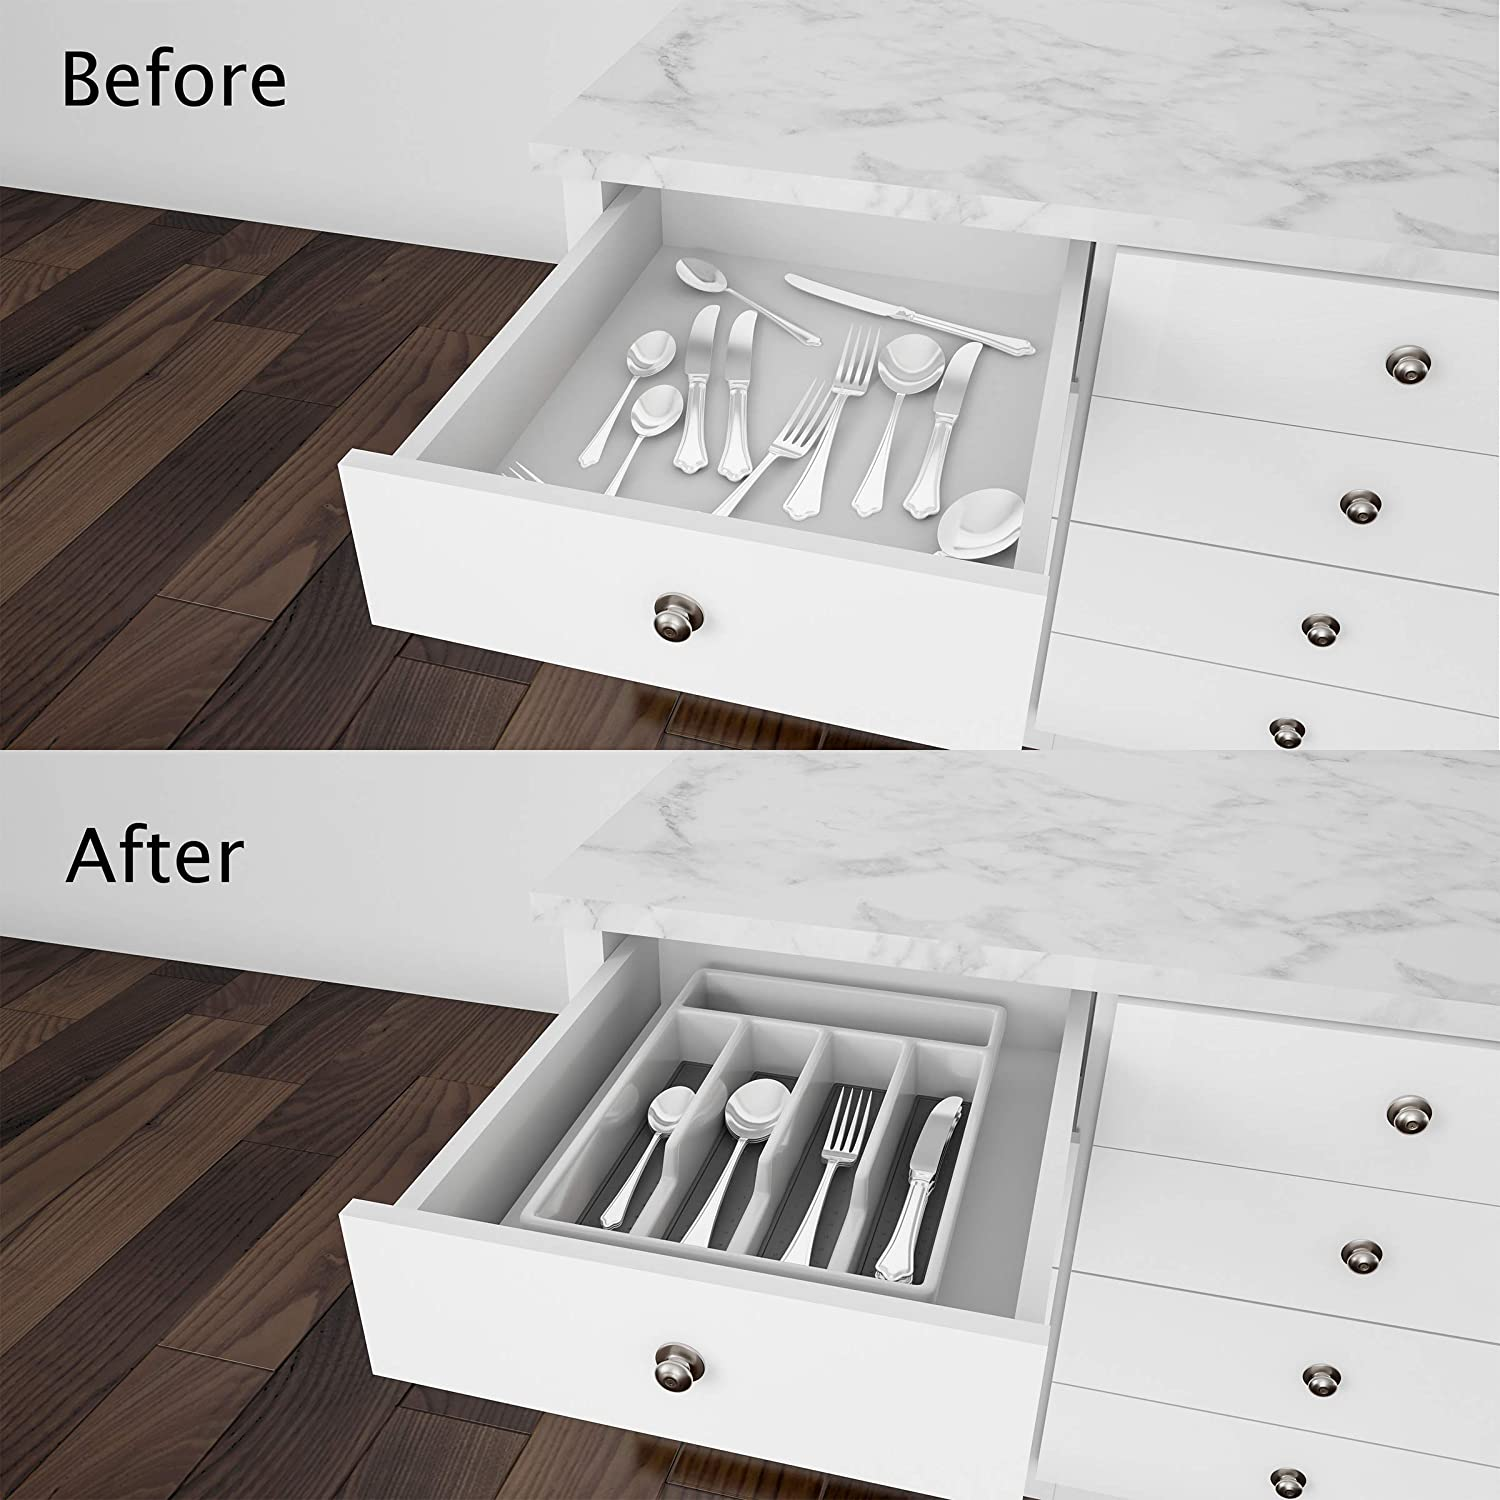 Lavish Home Silverware Organizer Cutlery and and Utensil Drawer Storage for Home or RV with Non-Slip Rubber Liner 5 Compartment Plastic Flatware